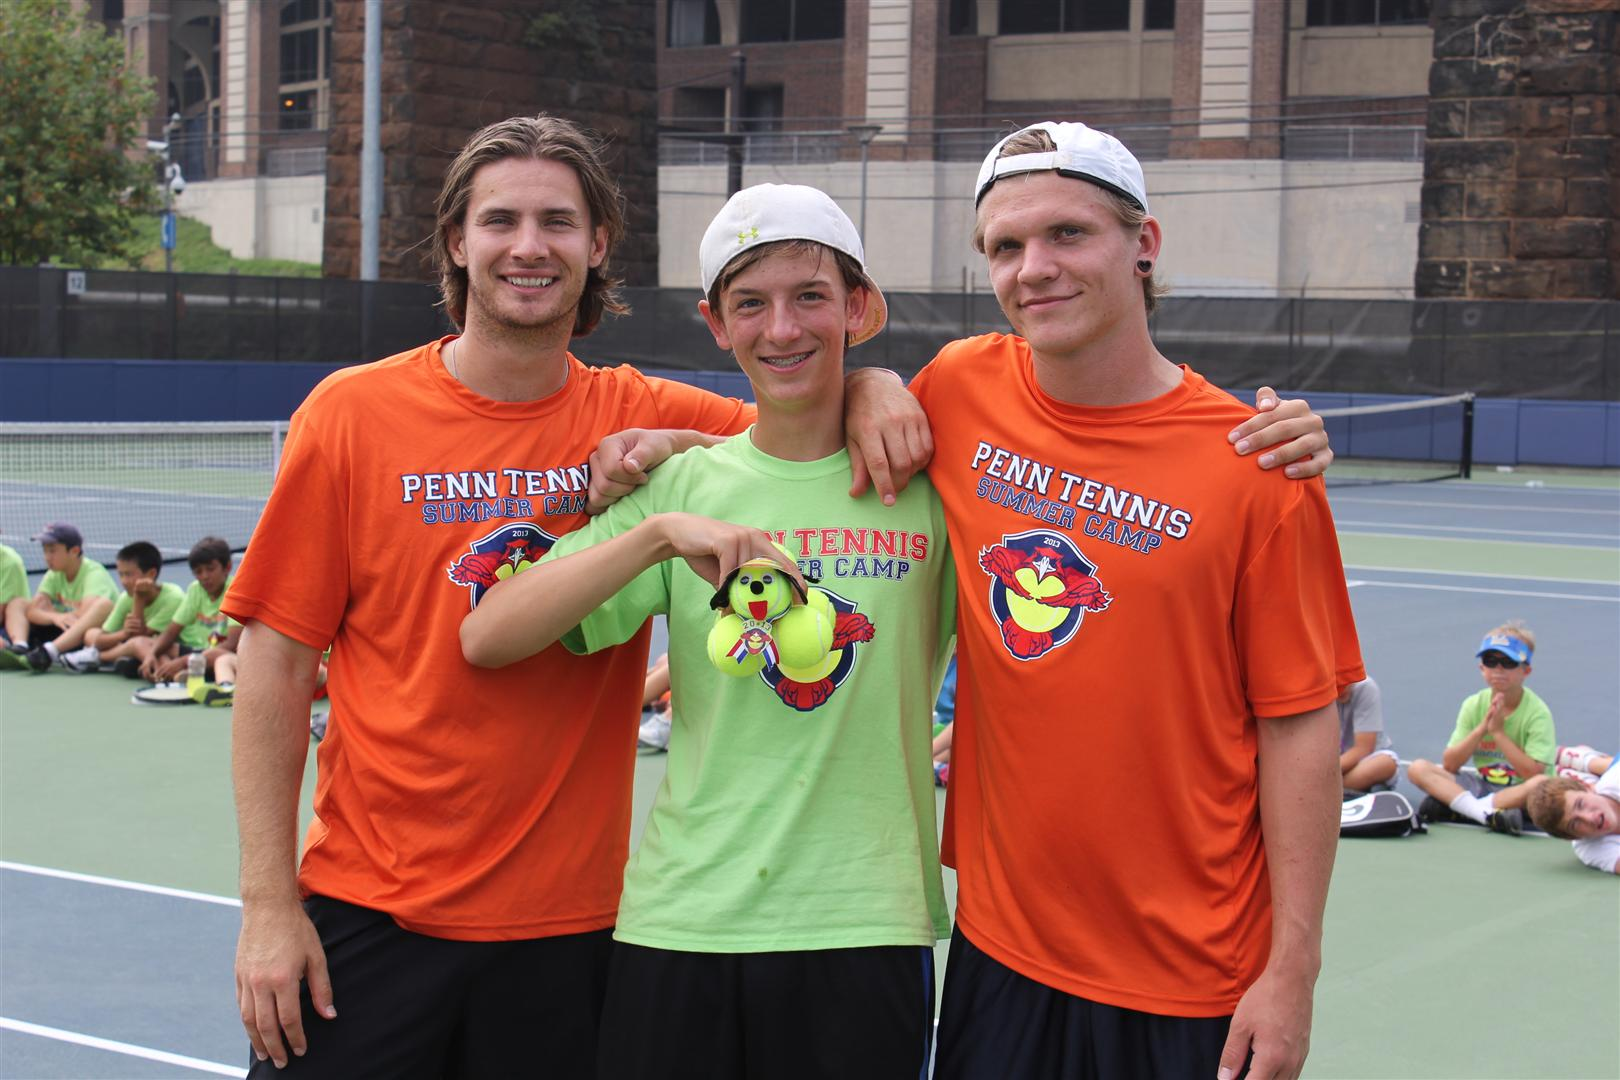 Penn Tennis Summer Camp - Elite